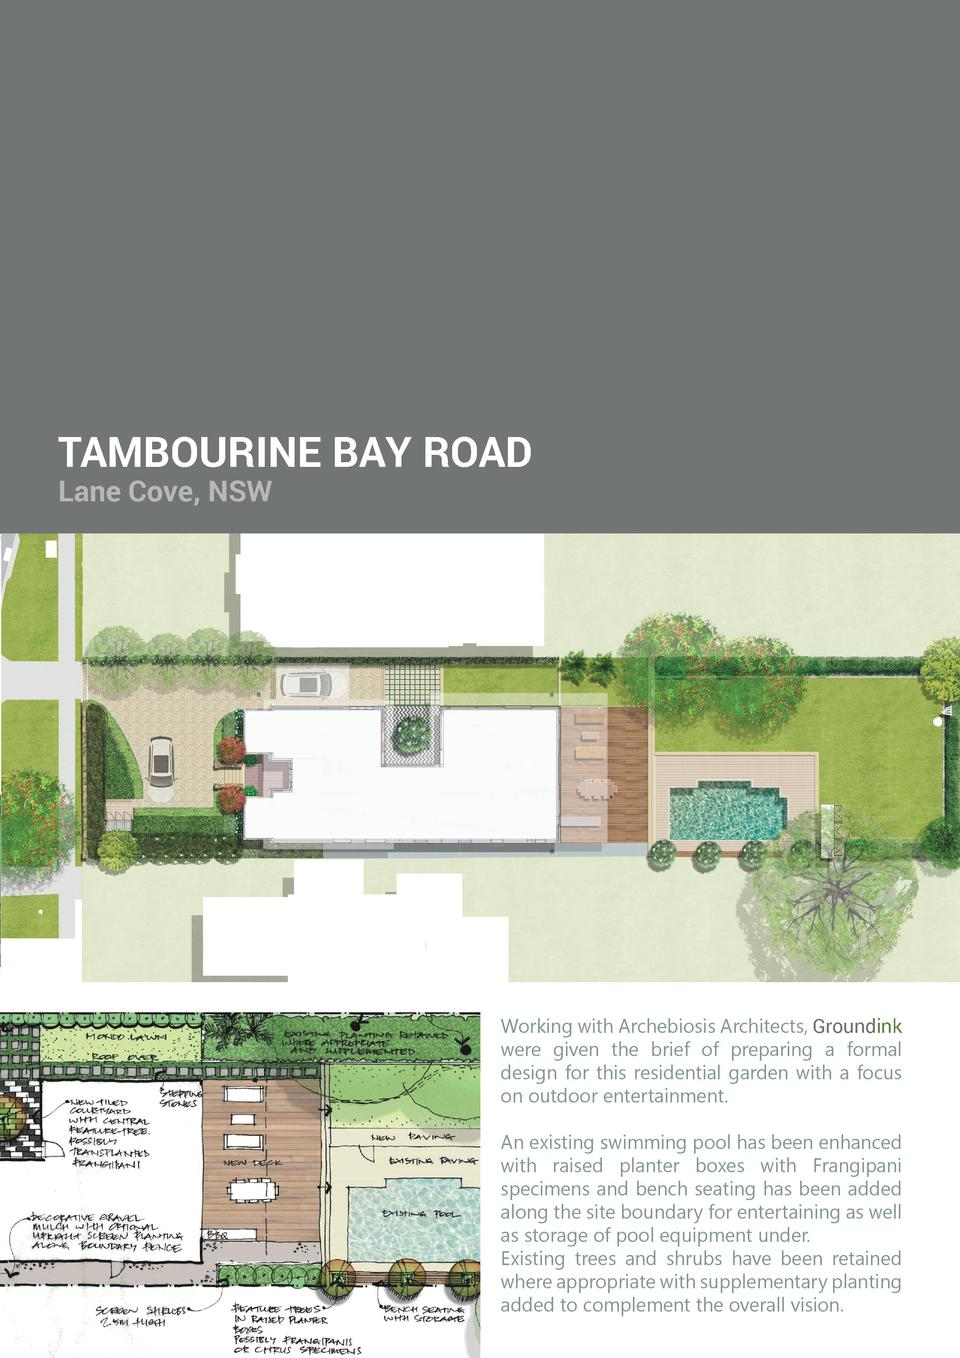 TAMBOURINE BAY ROAD Lane Cove, NSW  Sketch concept of pool bench seating and feature trees in raised planter boxes  Exampl...